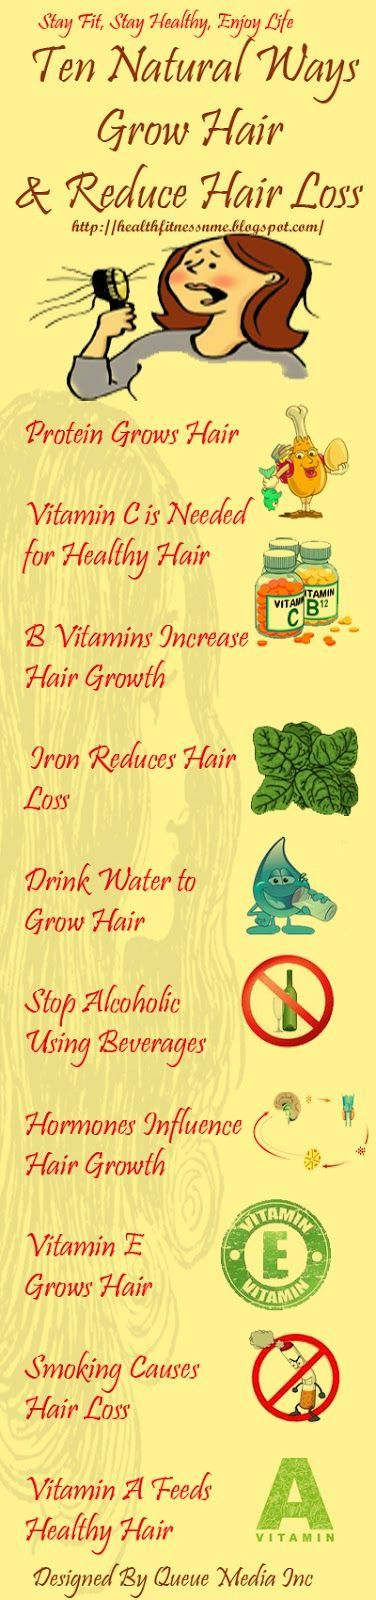 Ten Natural Ways to Grow Hair and Reduce Hair Loss